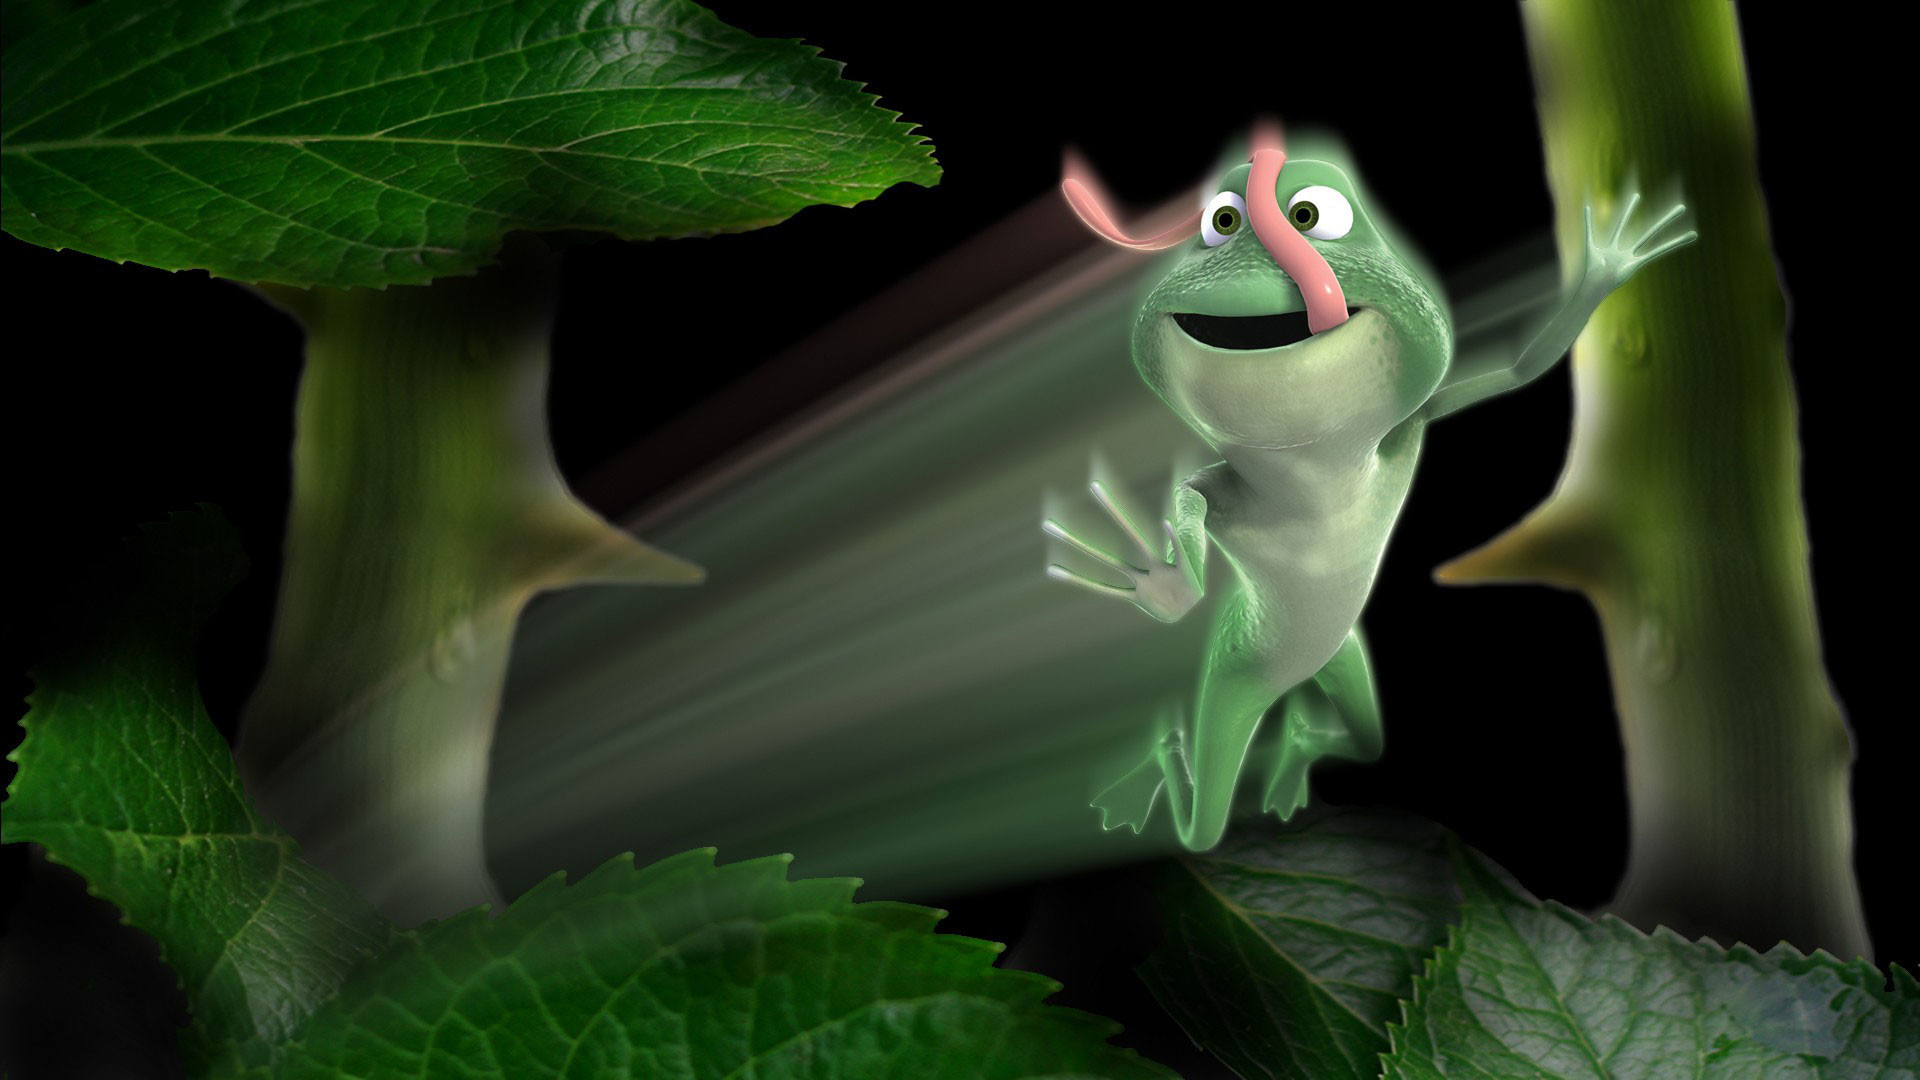 1920x1080 hd-pics-photos-best-3d-animated-green-frog-